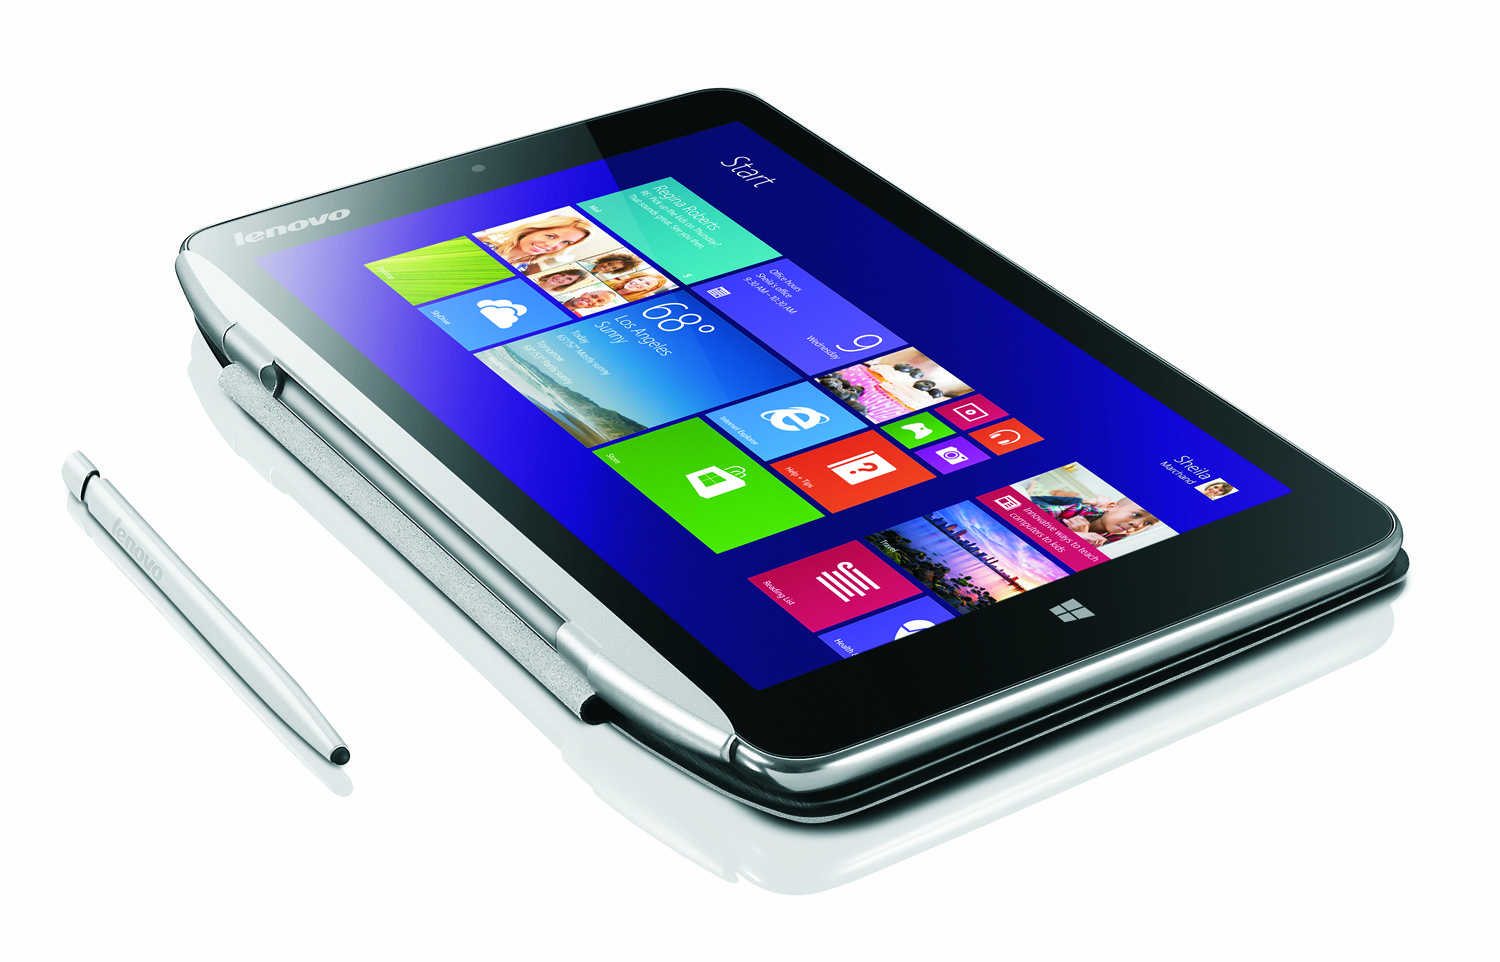 Lenovo Miix 2: 8-Zoll-Tablet mit Windows 8.1 und Bay-Trail-SoC für 300 USD -